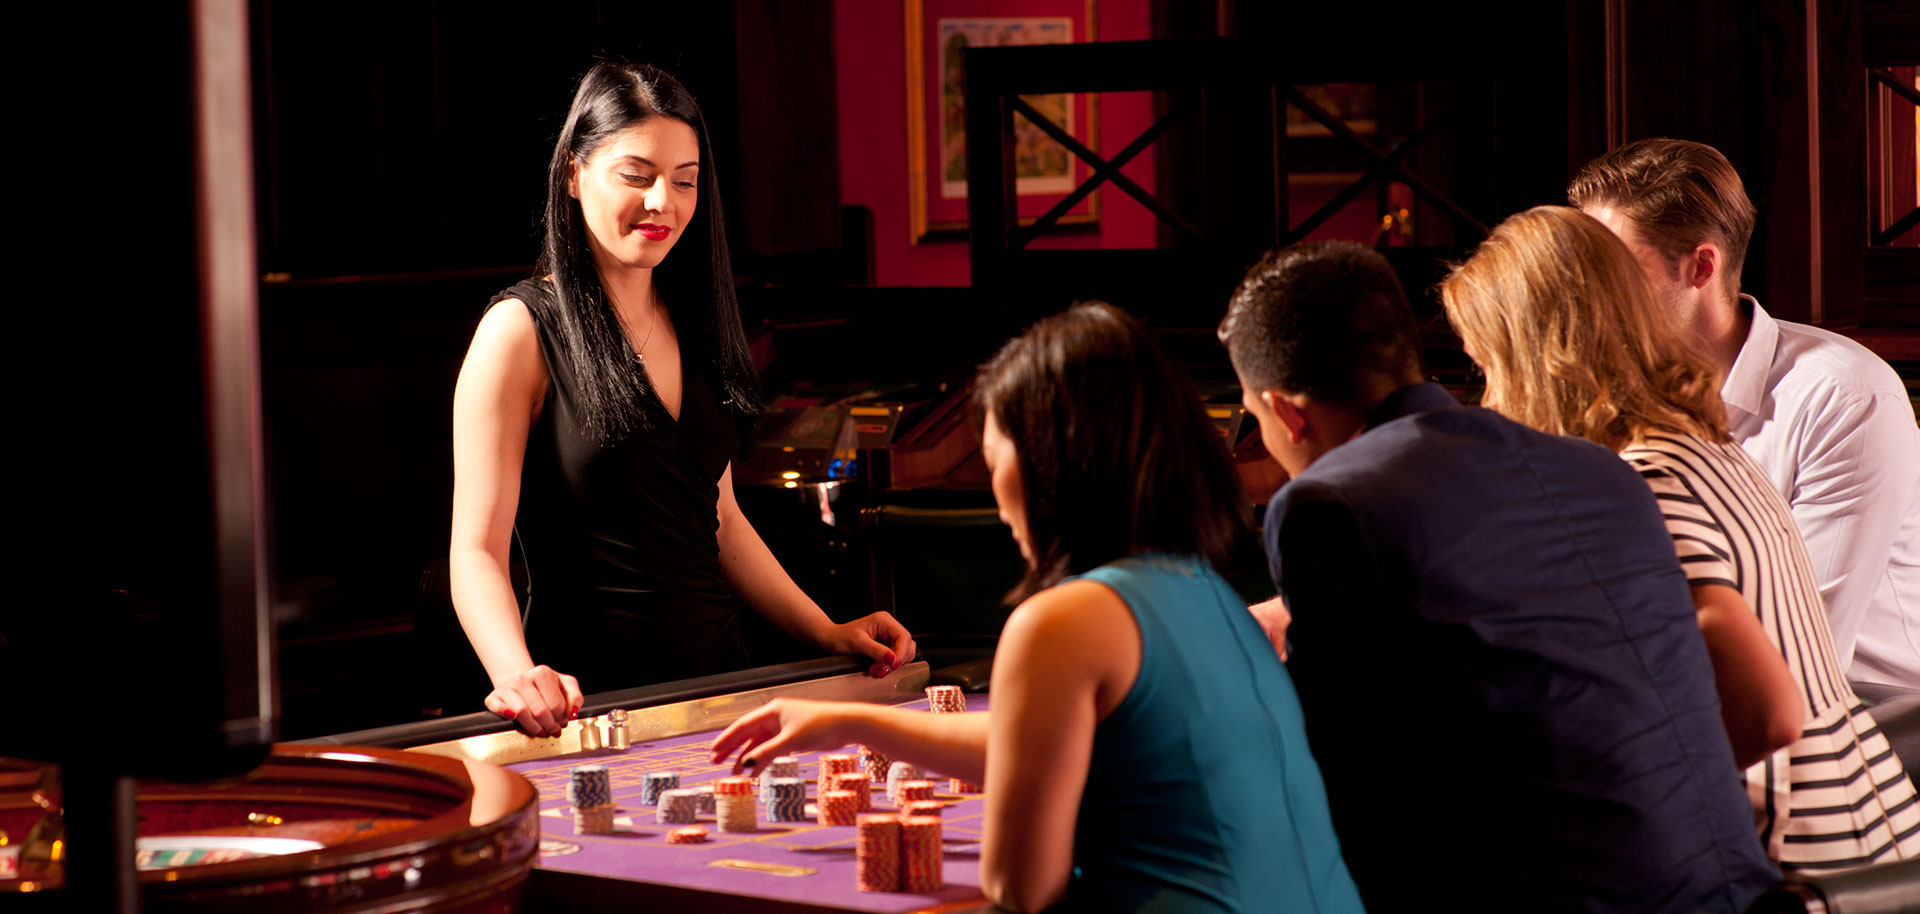 Roulette dealer waiting for players to bet.